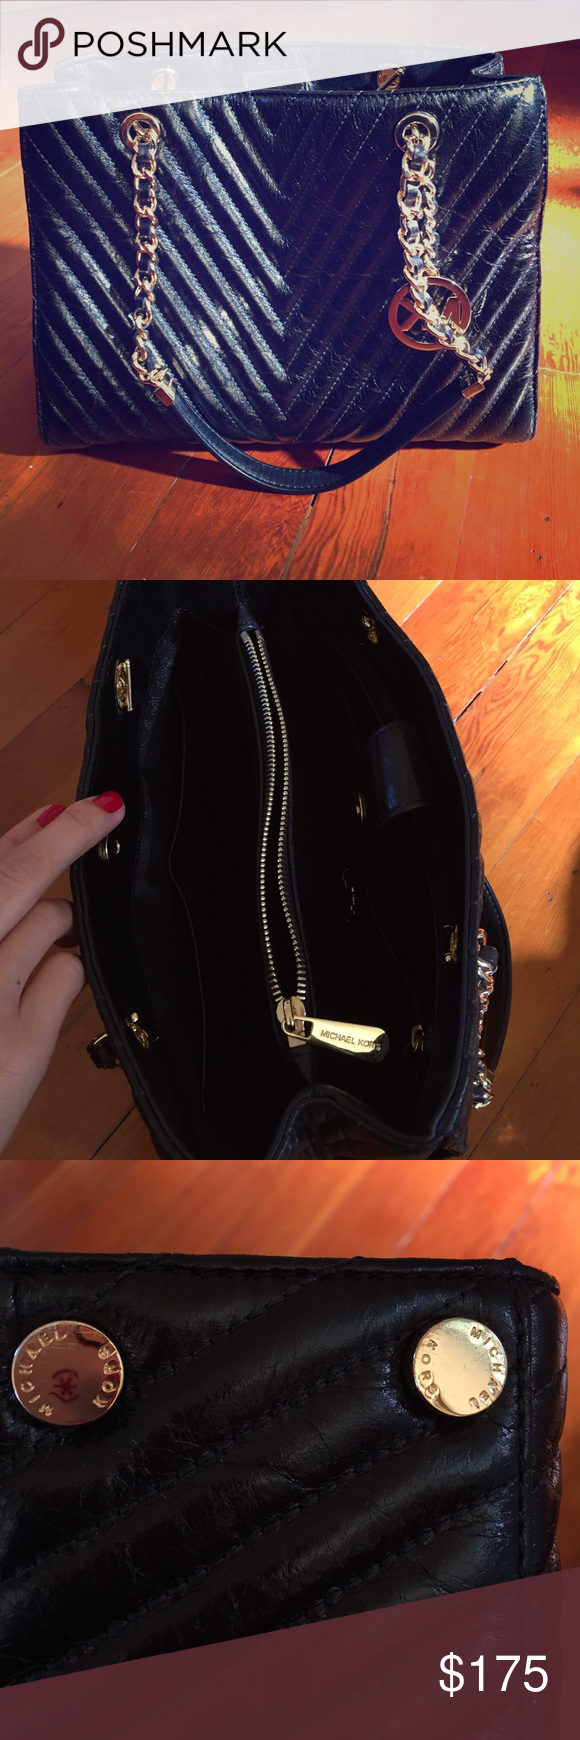 Michael Kors shoulder bag black Beautiful used once Michael Kors bag looking for a good home. It has ample inside zips and compartments. Length is 11.5, height is 9, and depth is roughly 4. Will have dust bag. Michael Kors Bags Shoulder Bags